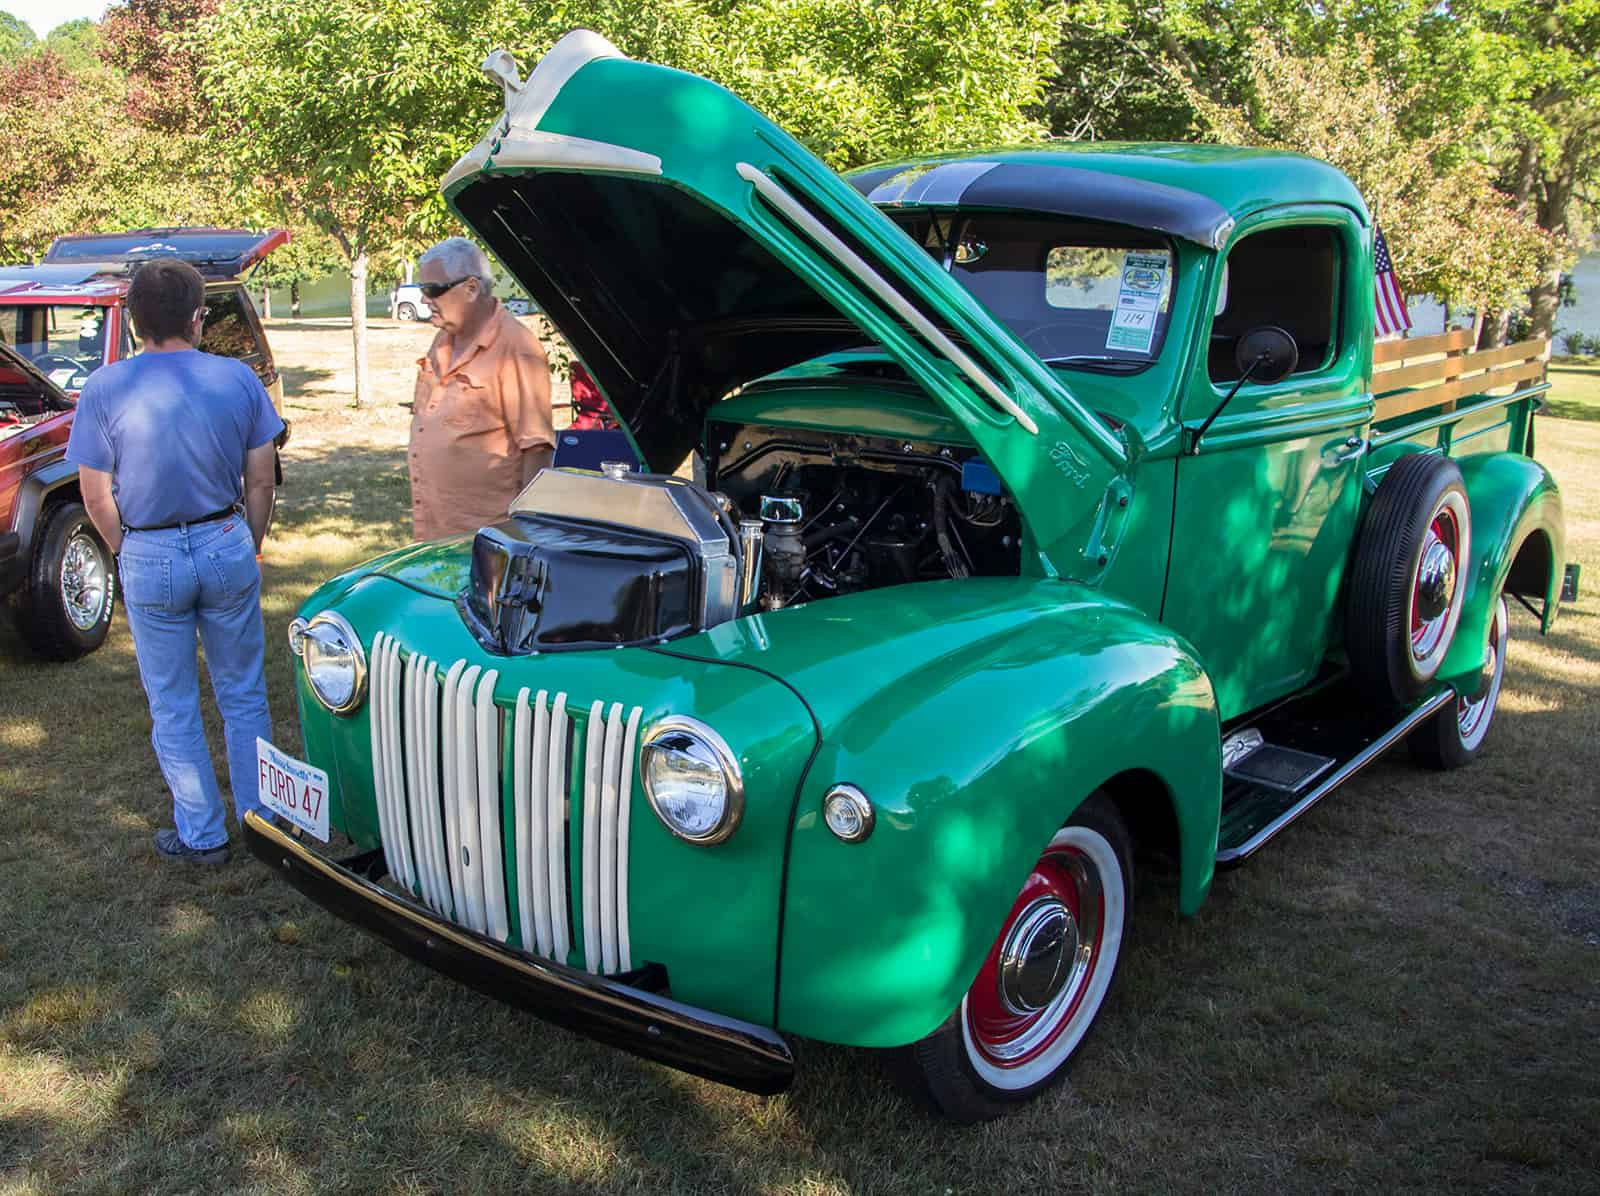 2016 Cars of Summer - Mike's 47 Ford Truck